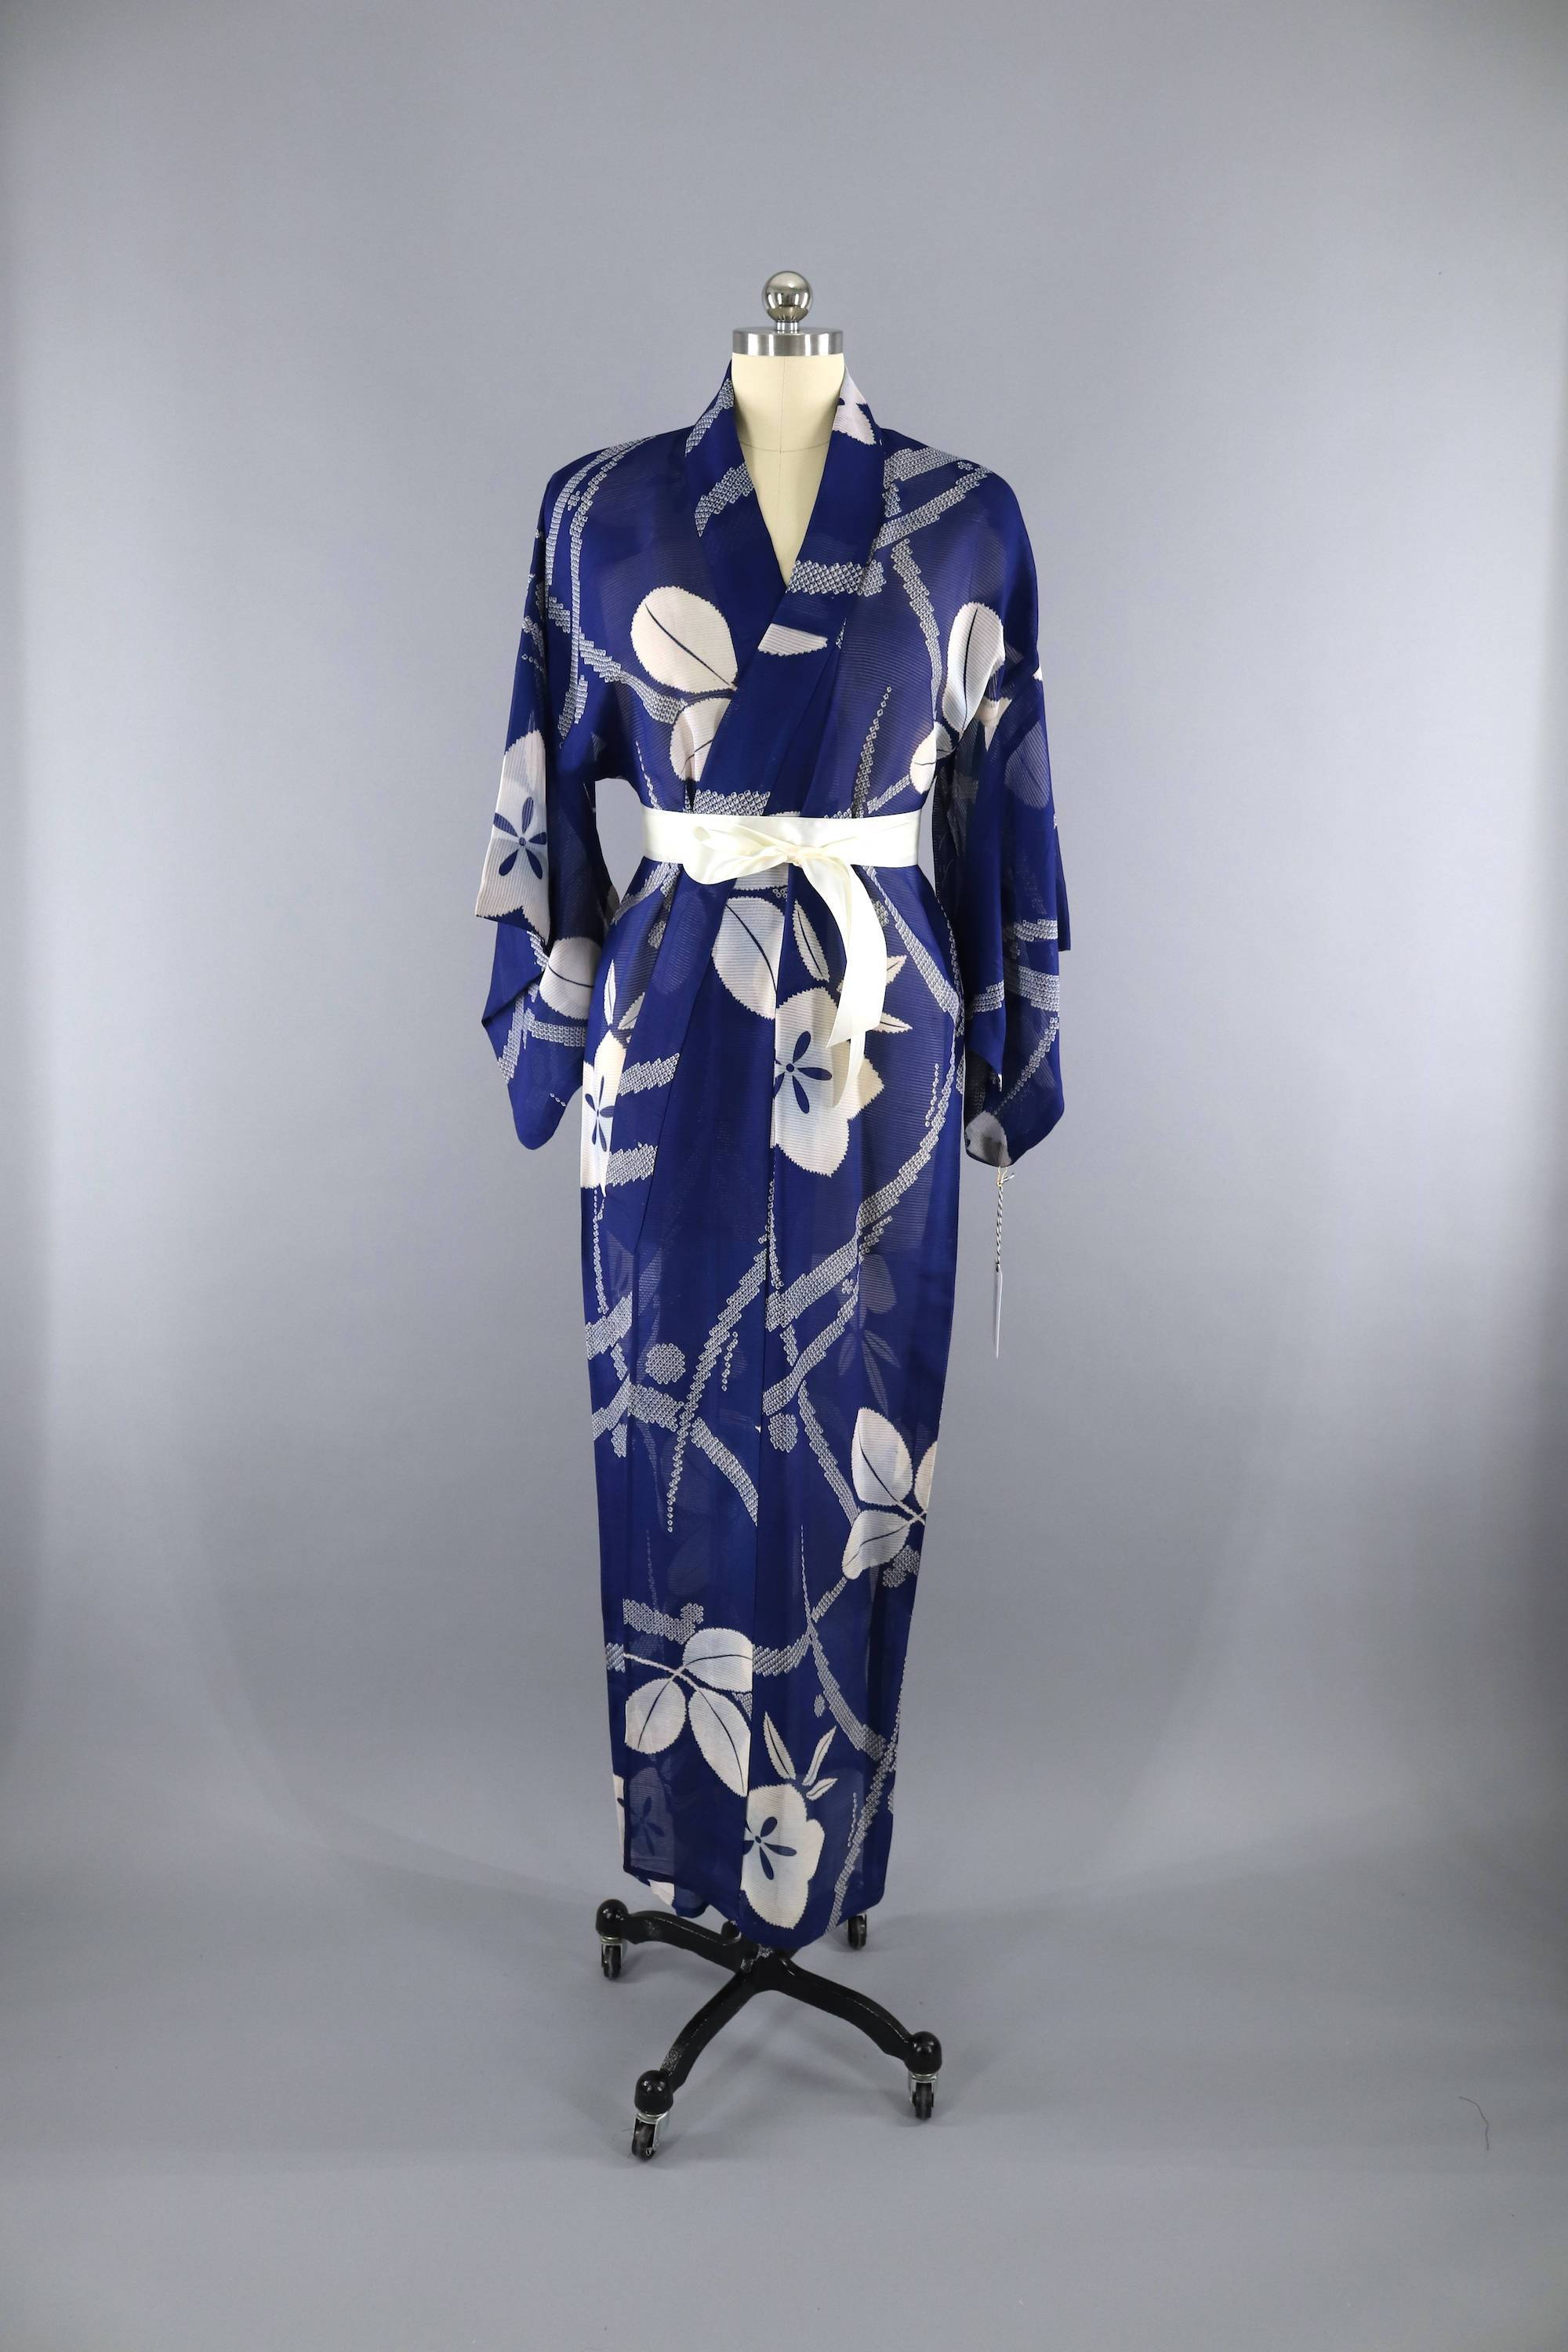 Sheer geisha robe